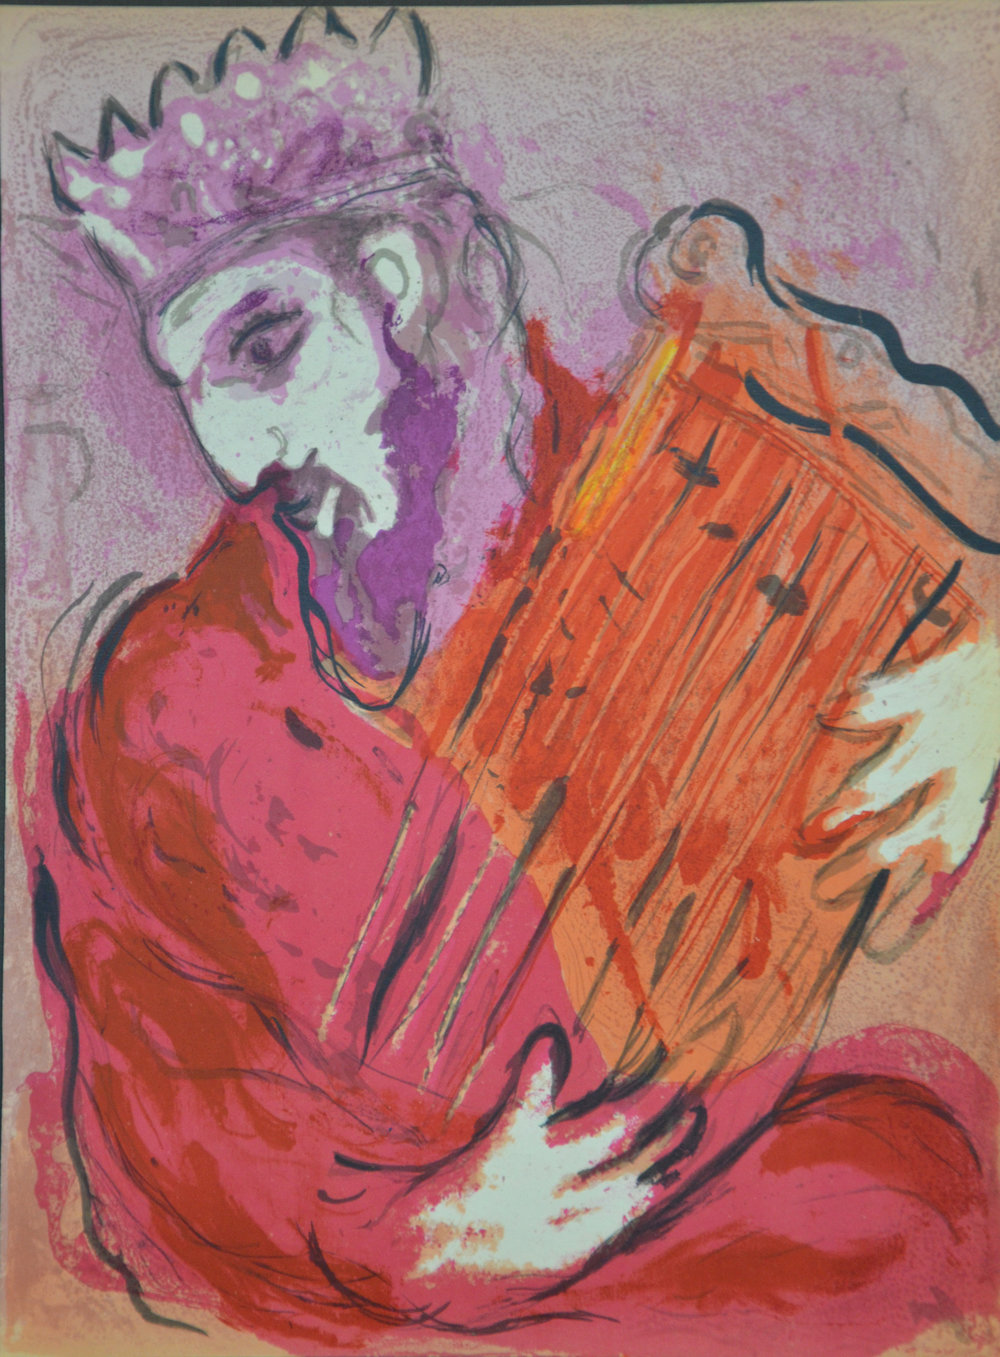 M. Chagall | David with a Harp | Lithograph, © 2018 Artists Rights Society (ARS), New York / ADAGP, Paris